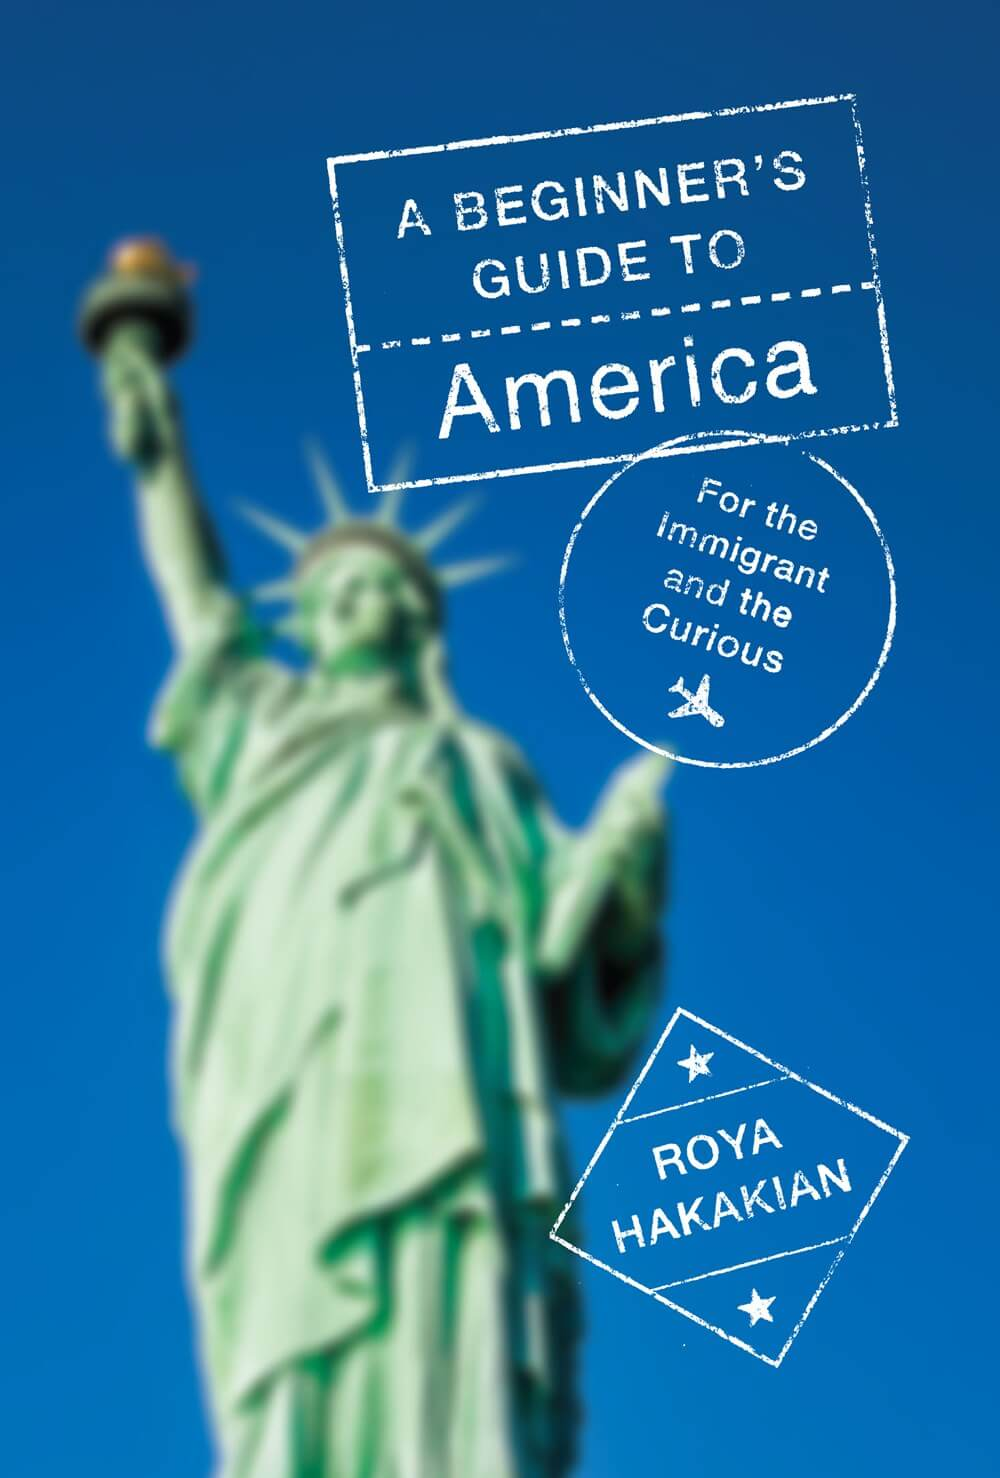 A Beginner's Guide to America: For the Immigrant and the Curious